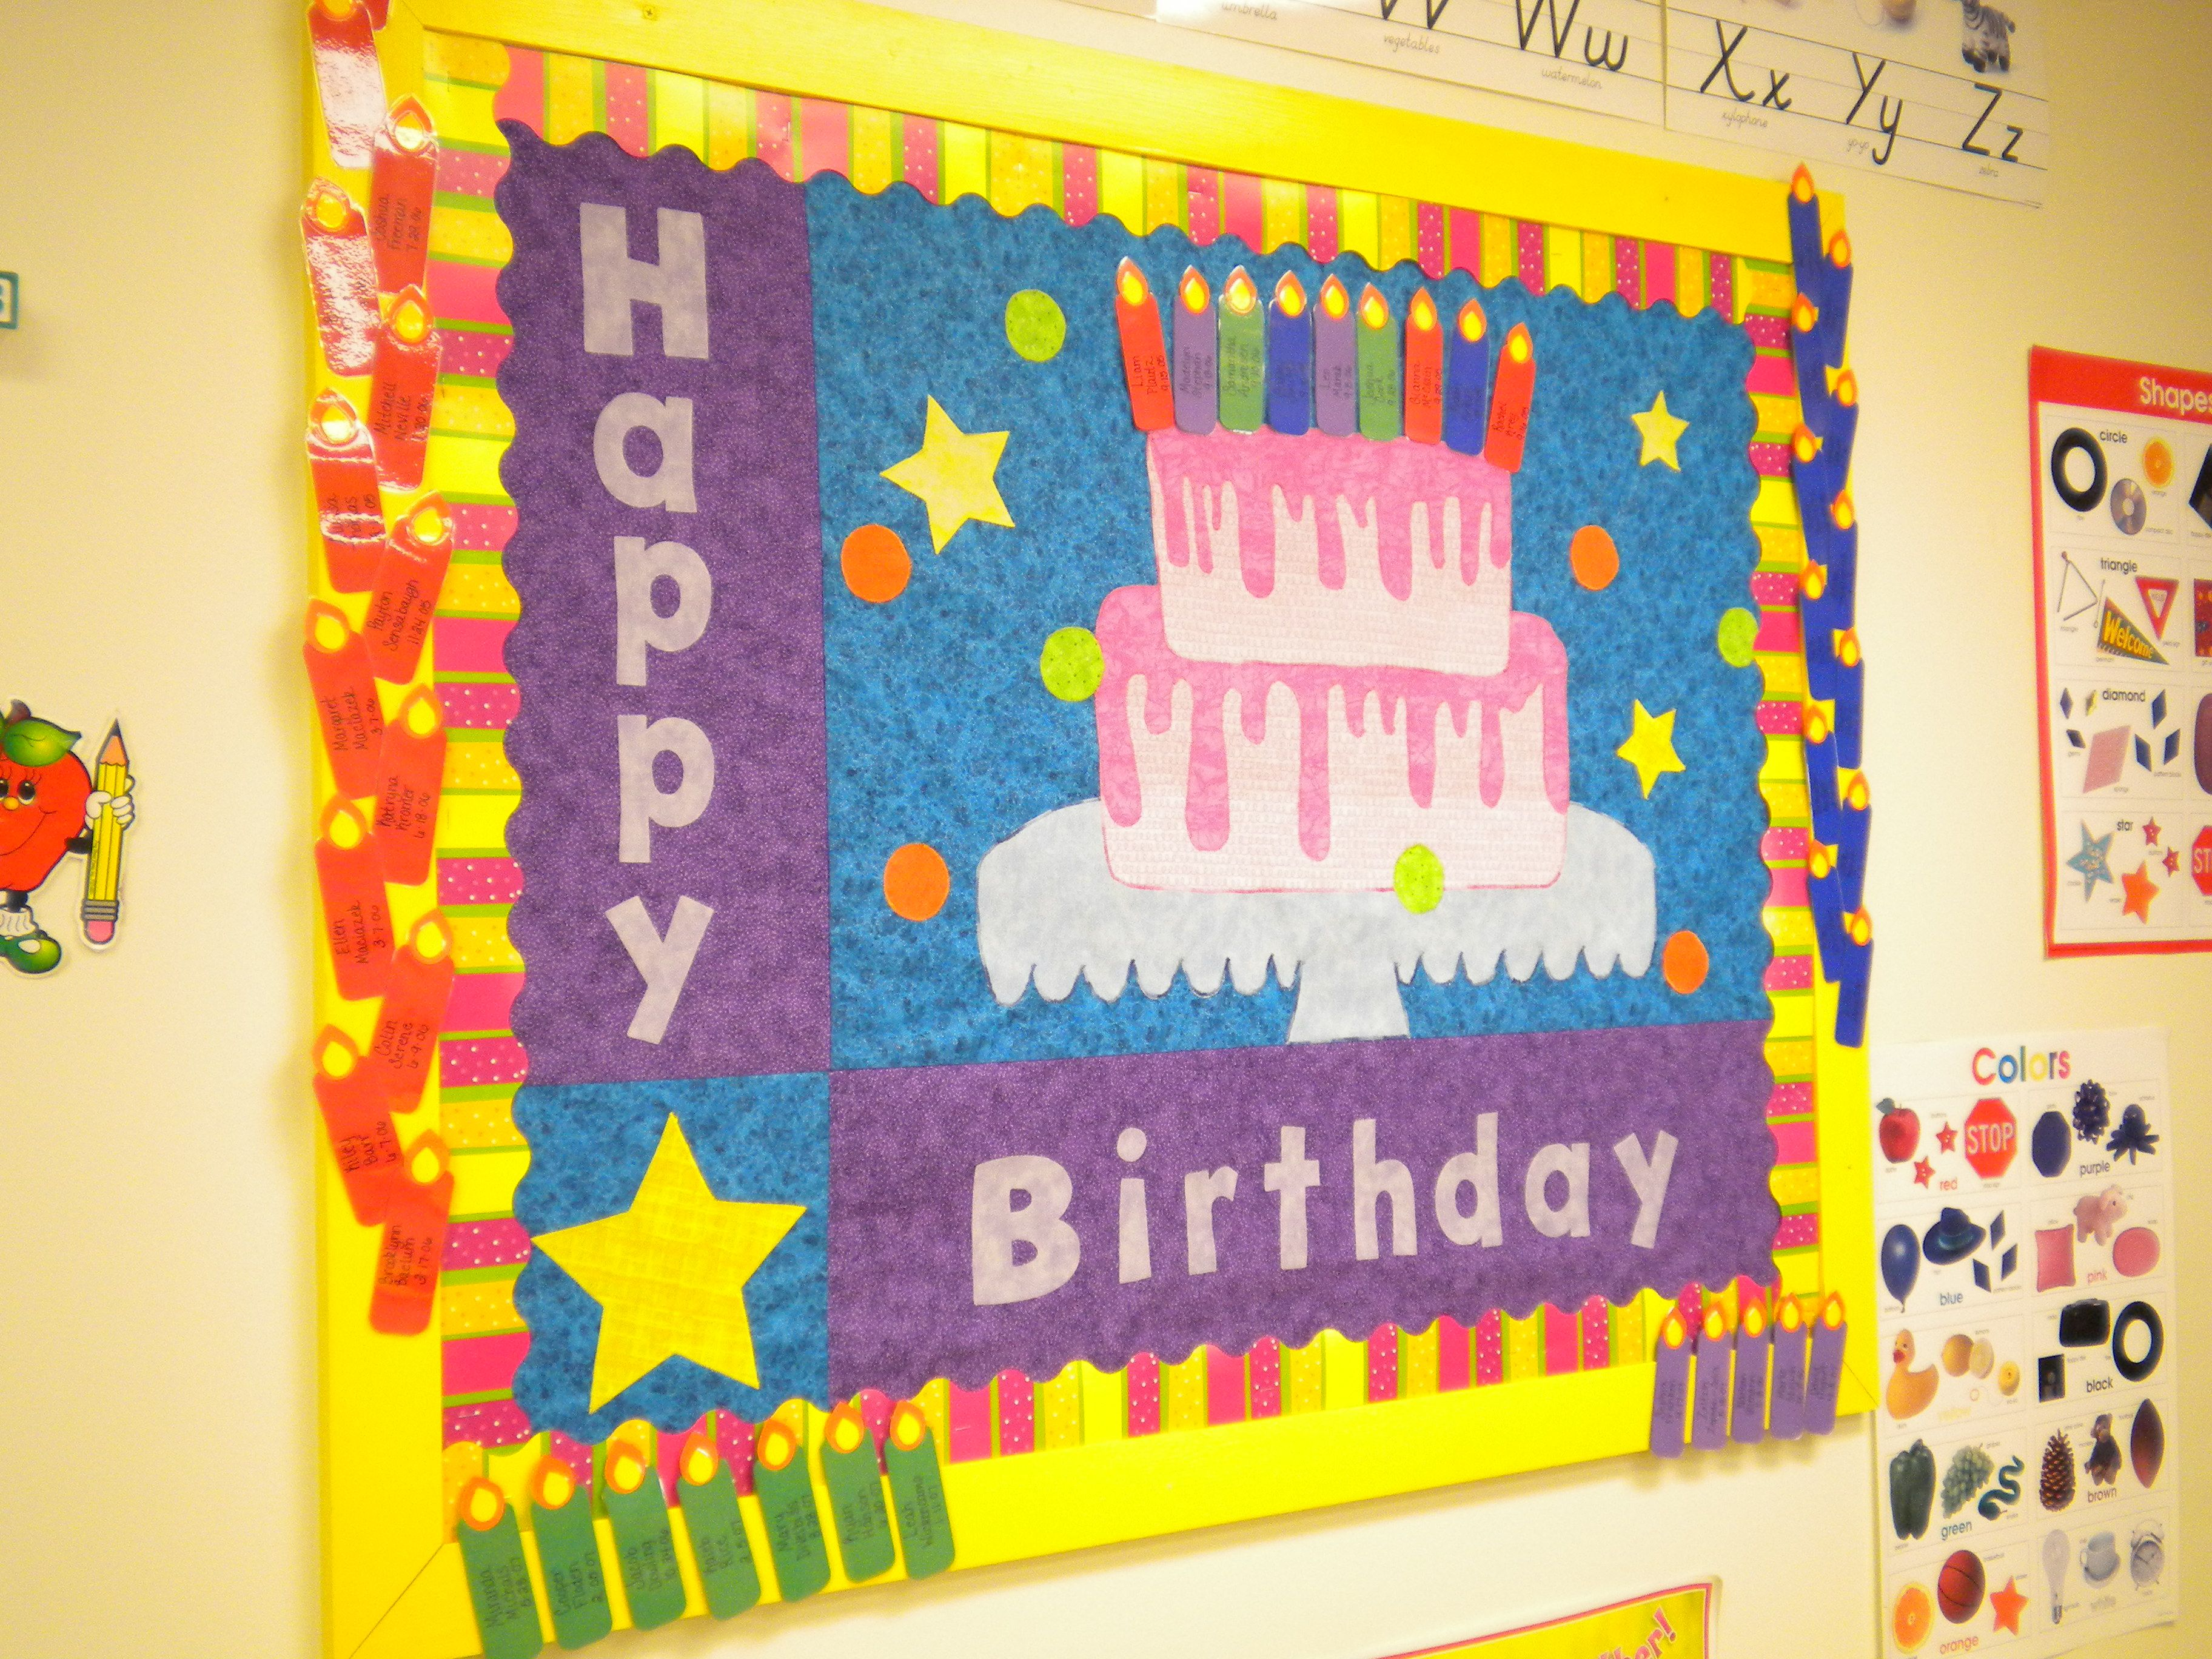 Best paint colors for preschool classrooms - Bunches Of Bulletin Boards Classroom Birthday Boardpreschool